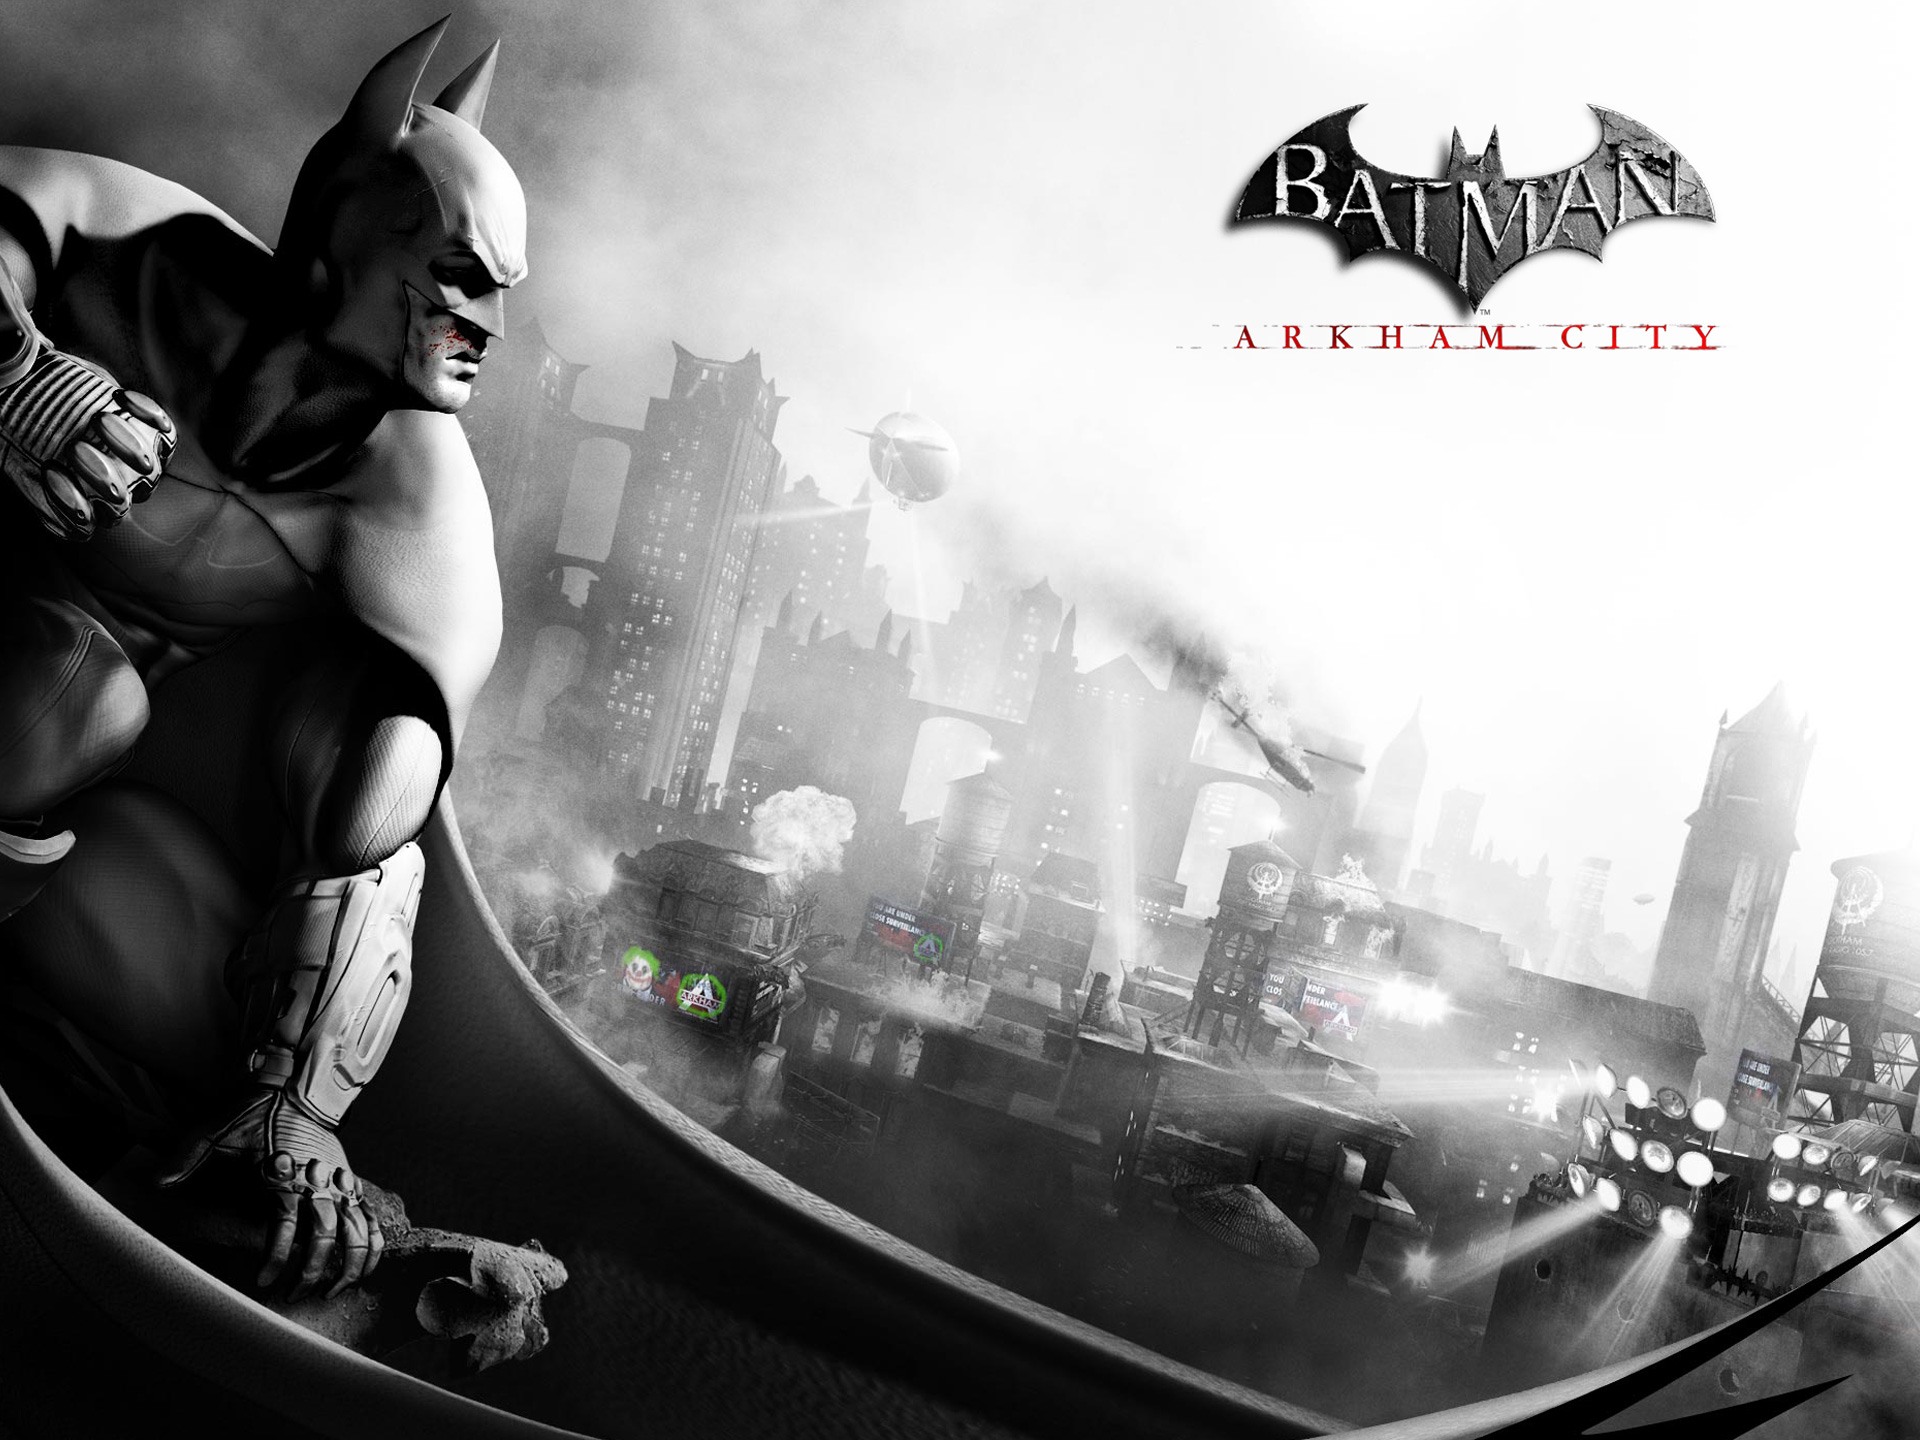 Batman Arkham City 2011 Game Wallpapers HD Wallpapers 1920x1440